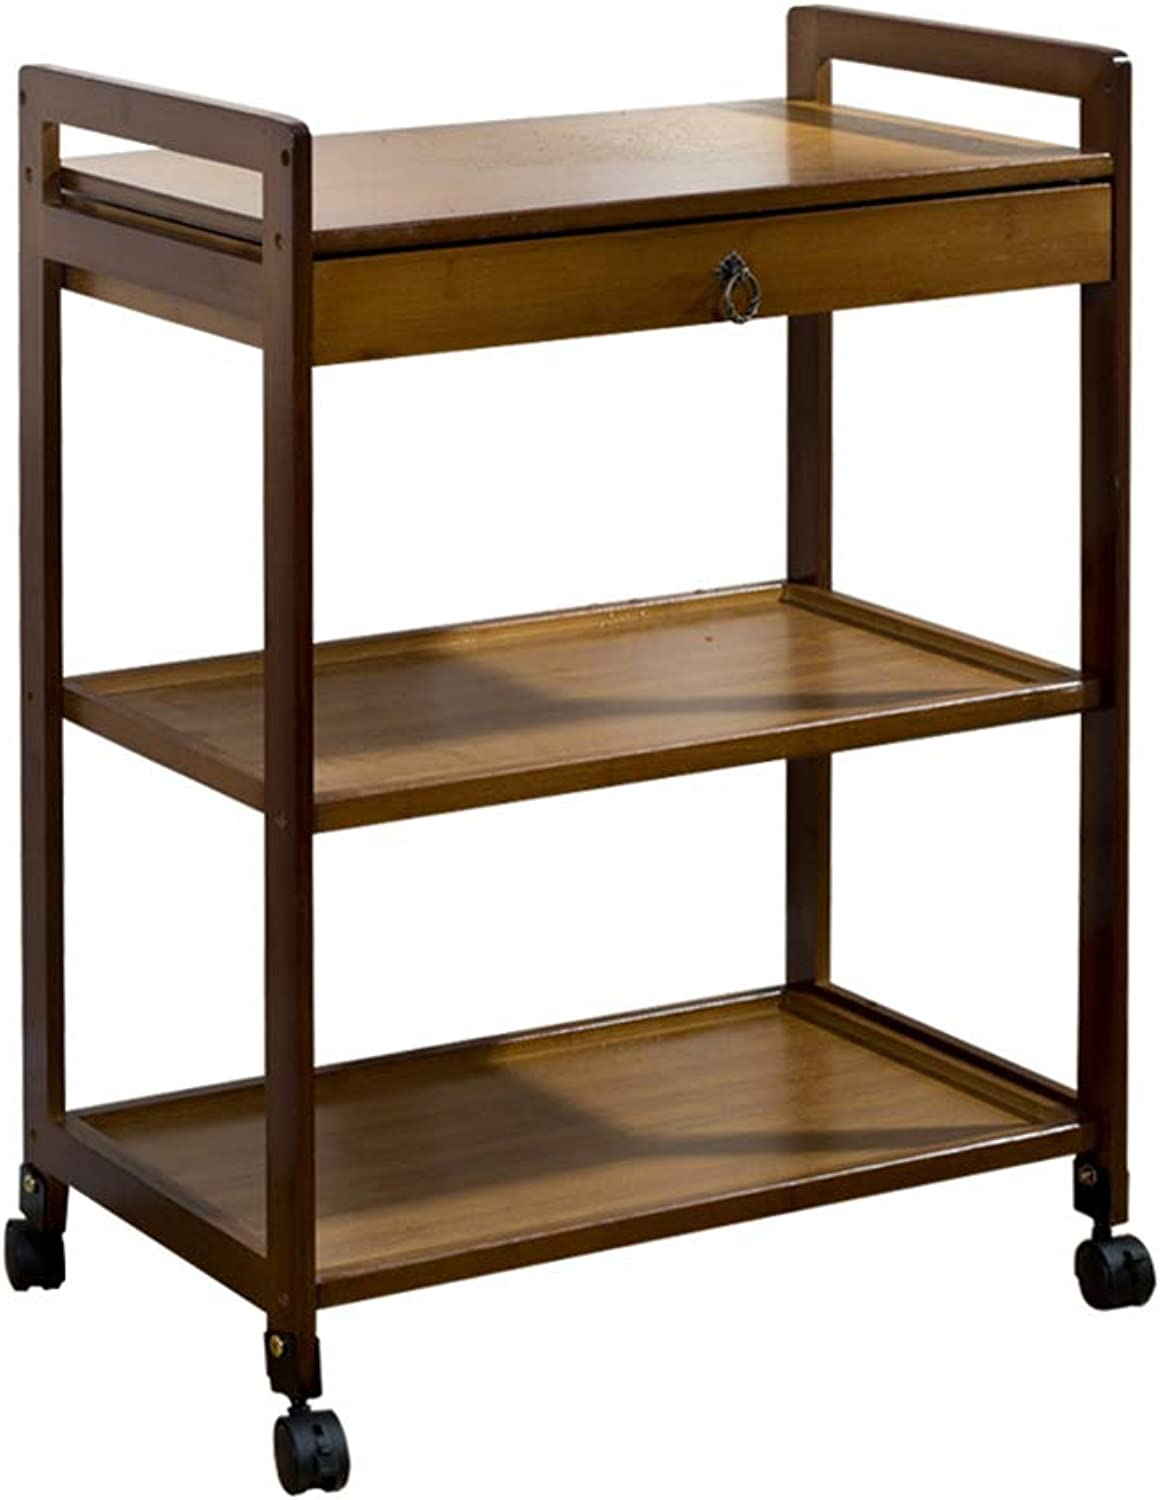 Coffee Tables Tea Cart Removable Sofa Small Coffee Table Tea Rack Living Room Side Cabinet Locker Small Tea Table Furniture Tables (color   Brown, Size   59  33  80cm)